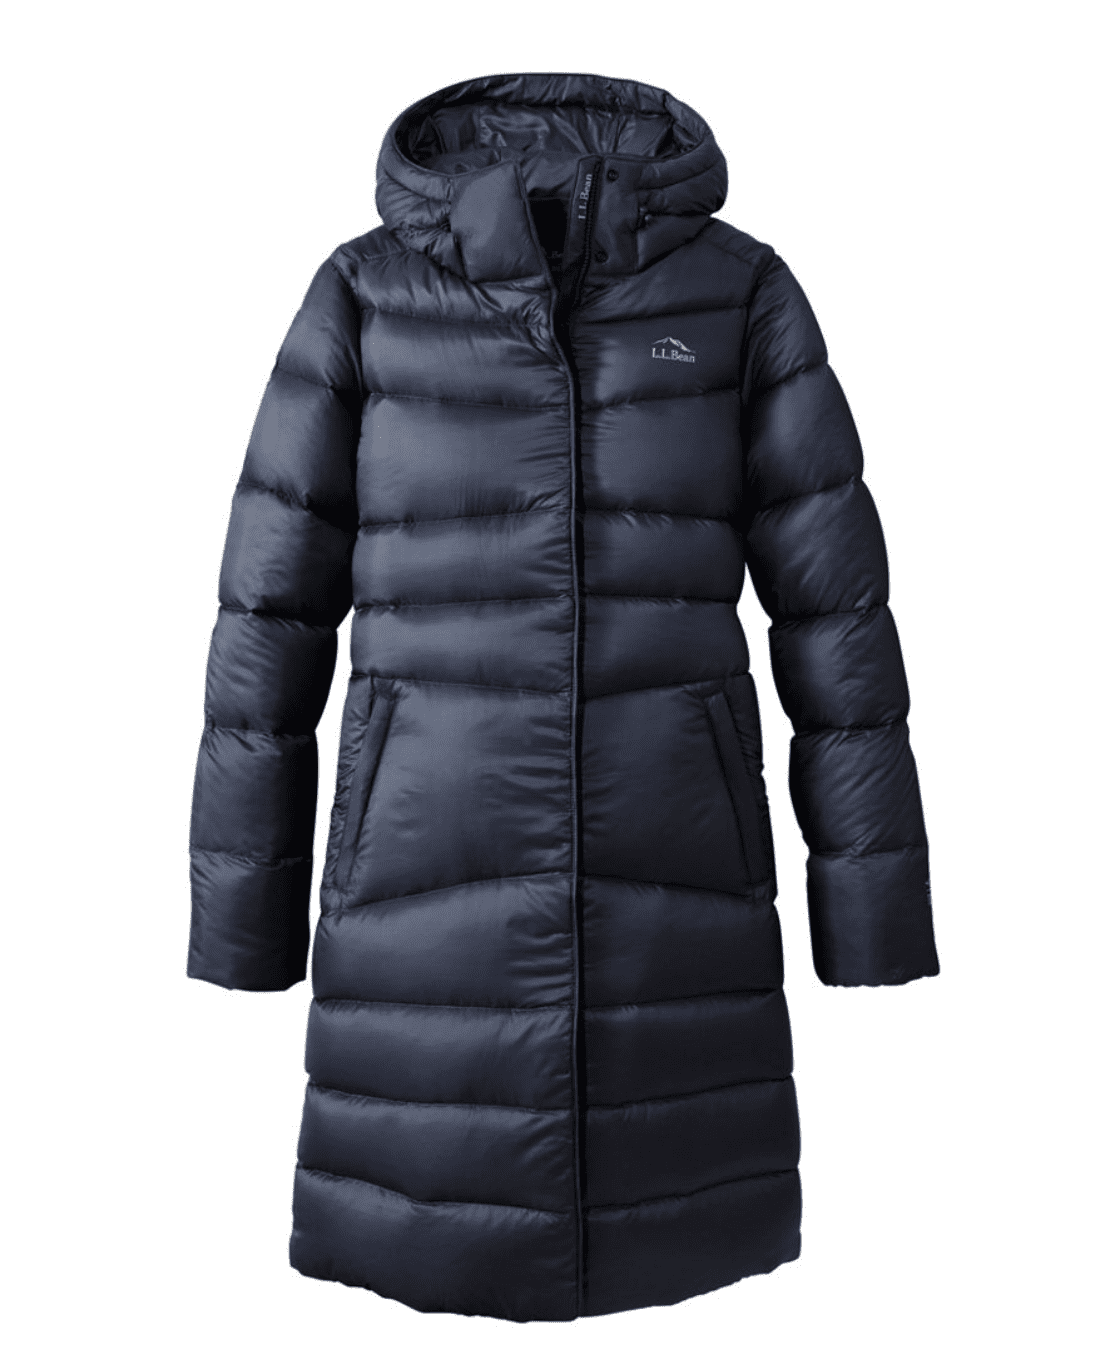 L.L.Bean: Up to 60% off end of season sale.